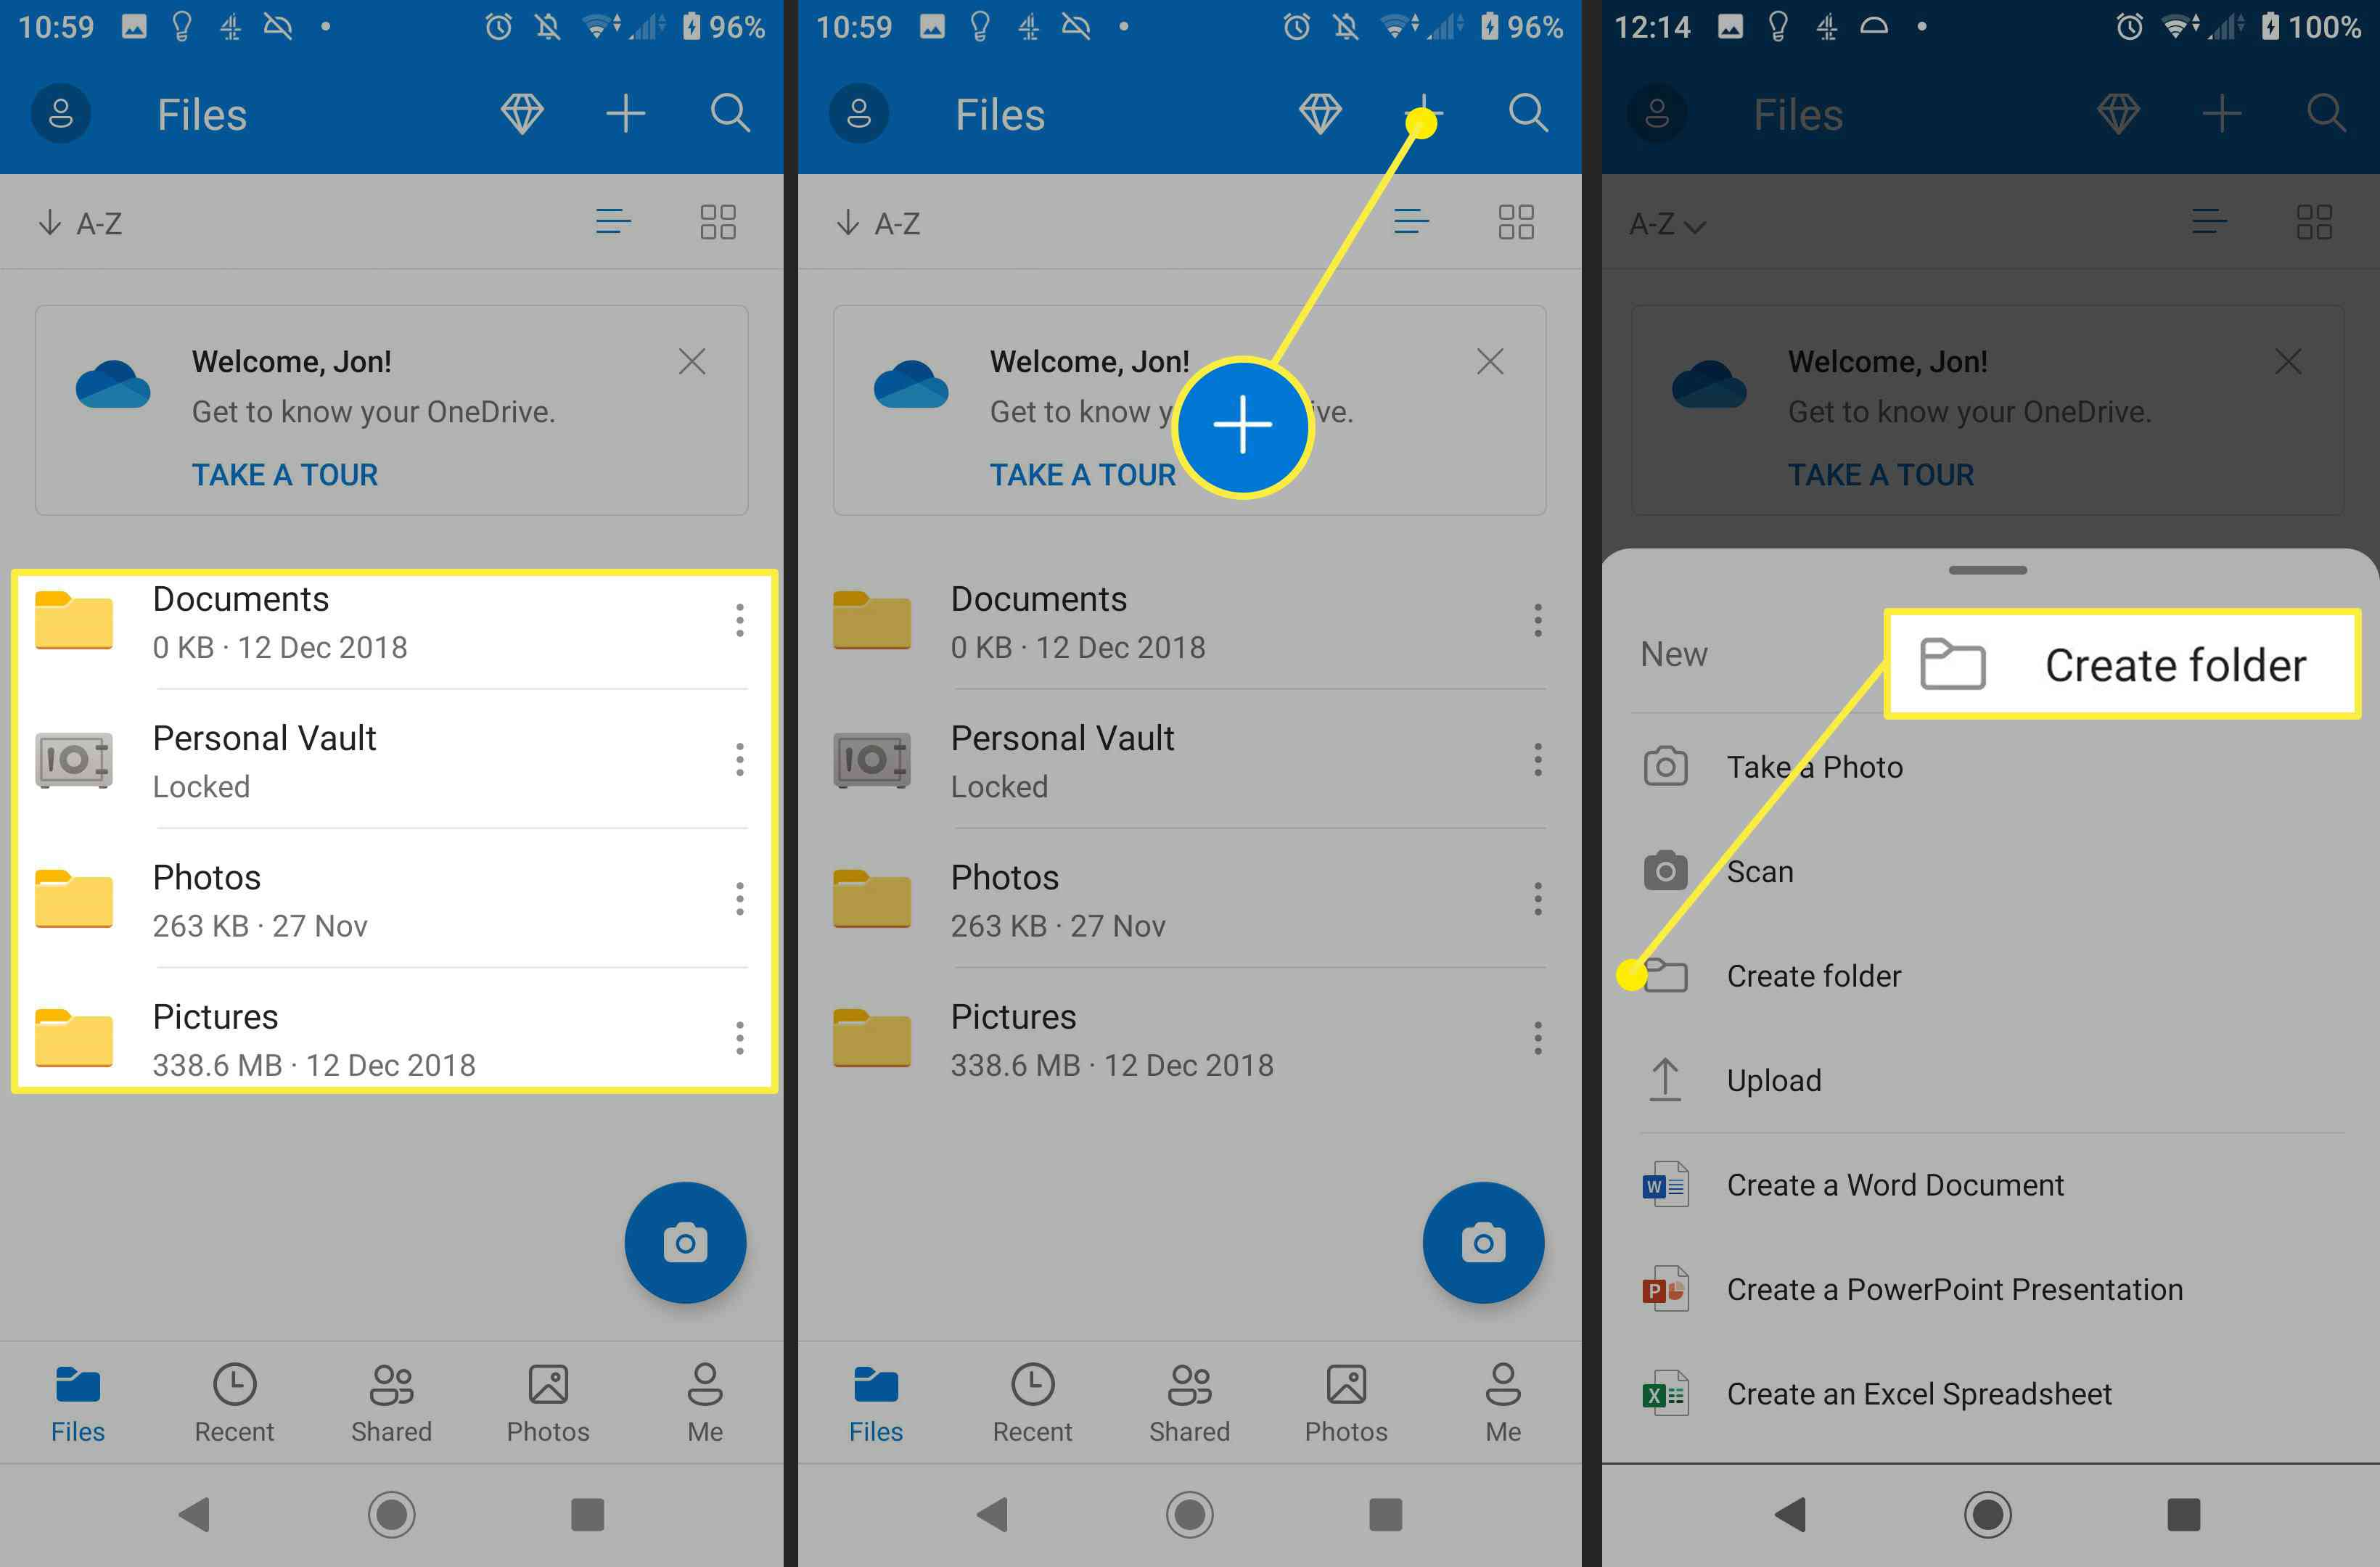 Images of the folder system on Android and how to create a new folder on Android.